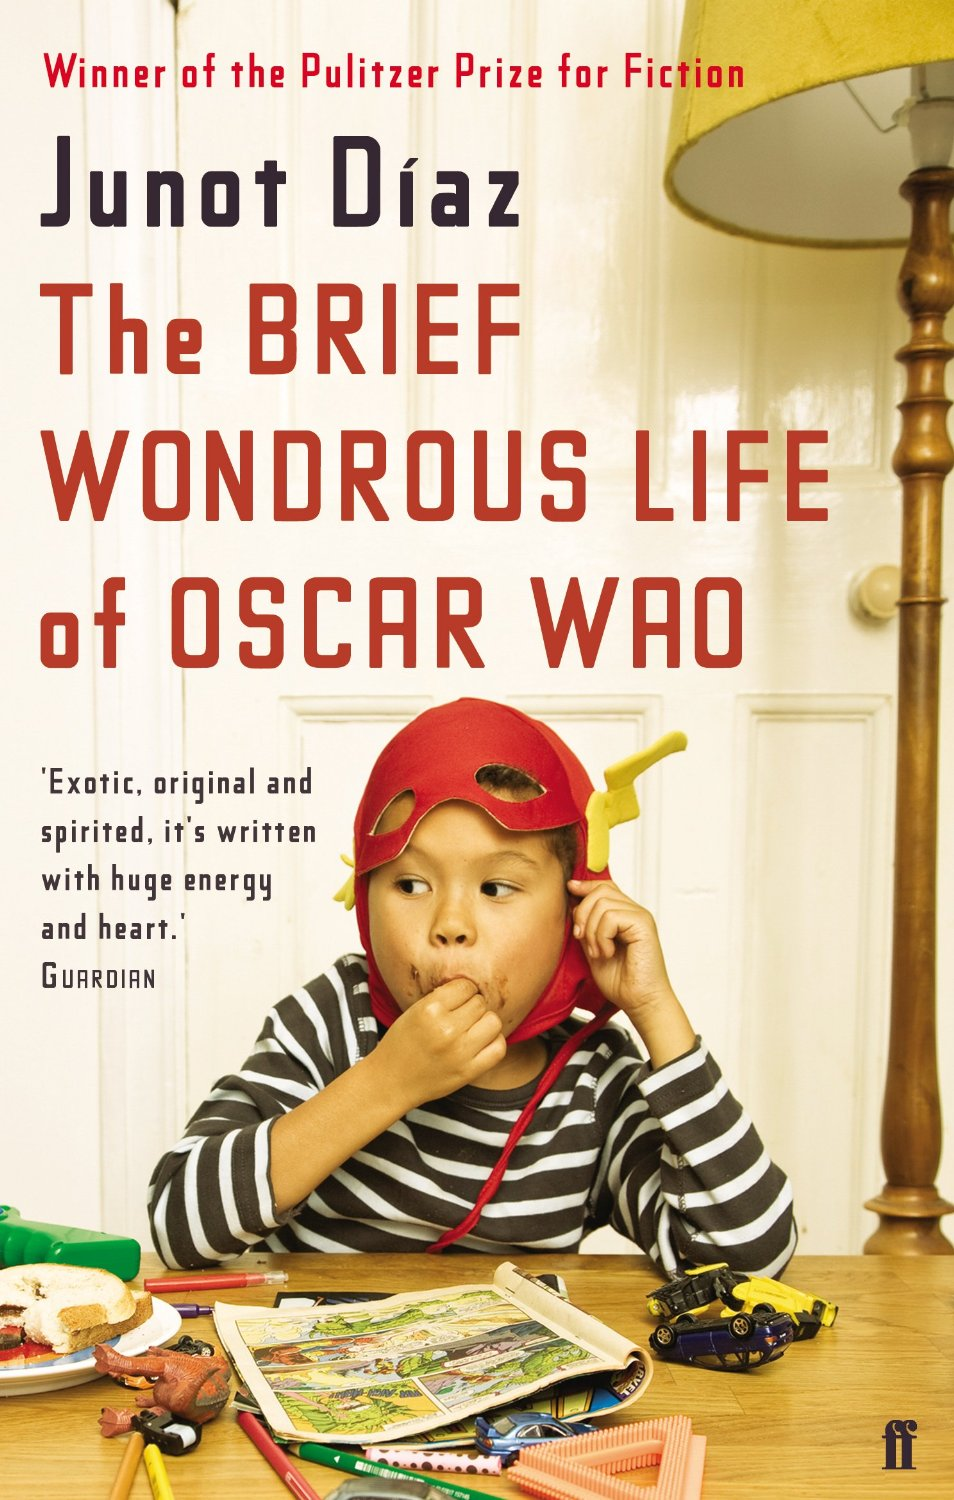 a review of the brief wondrous life of oscar wao a novel by junot daz Our reading guide for the brief wondrous life of oscar wao by junot diaz includes a book club discussion guide, book review, plot summary-synopsis and author bio.